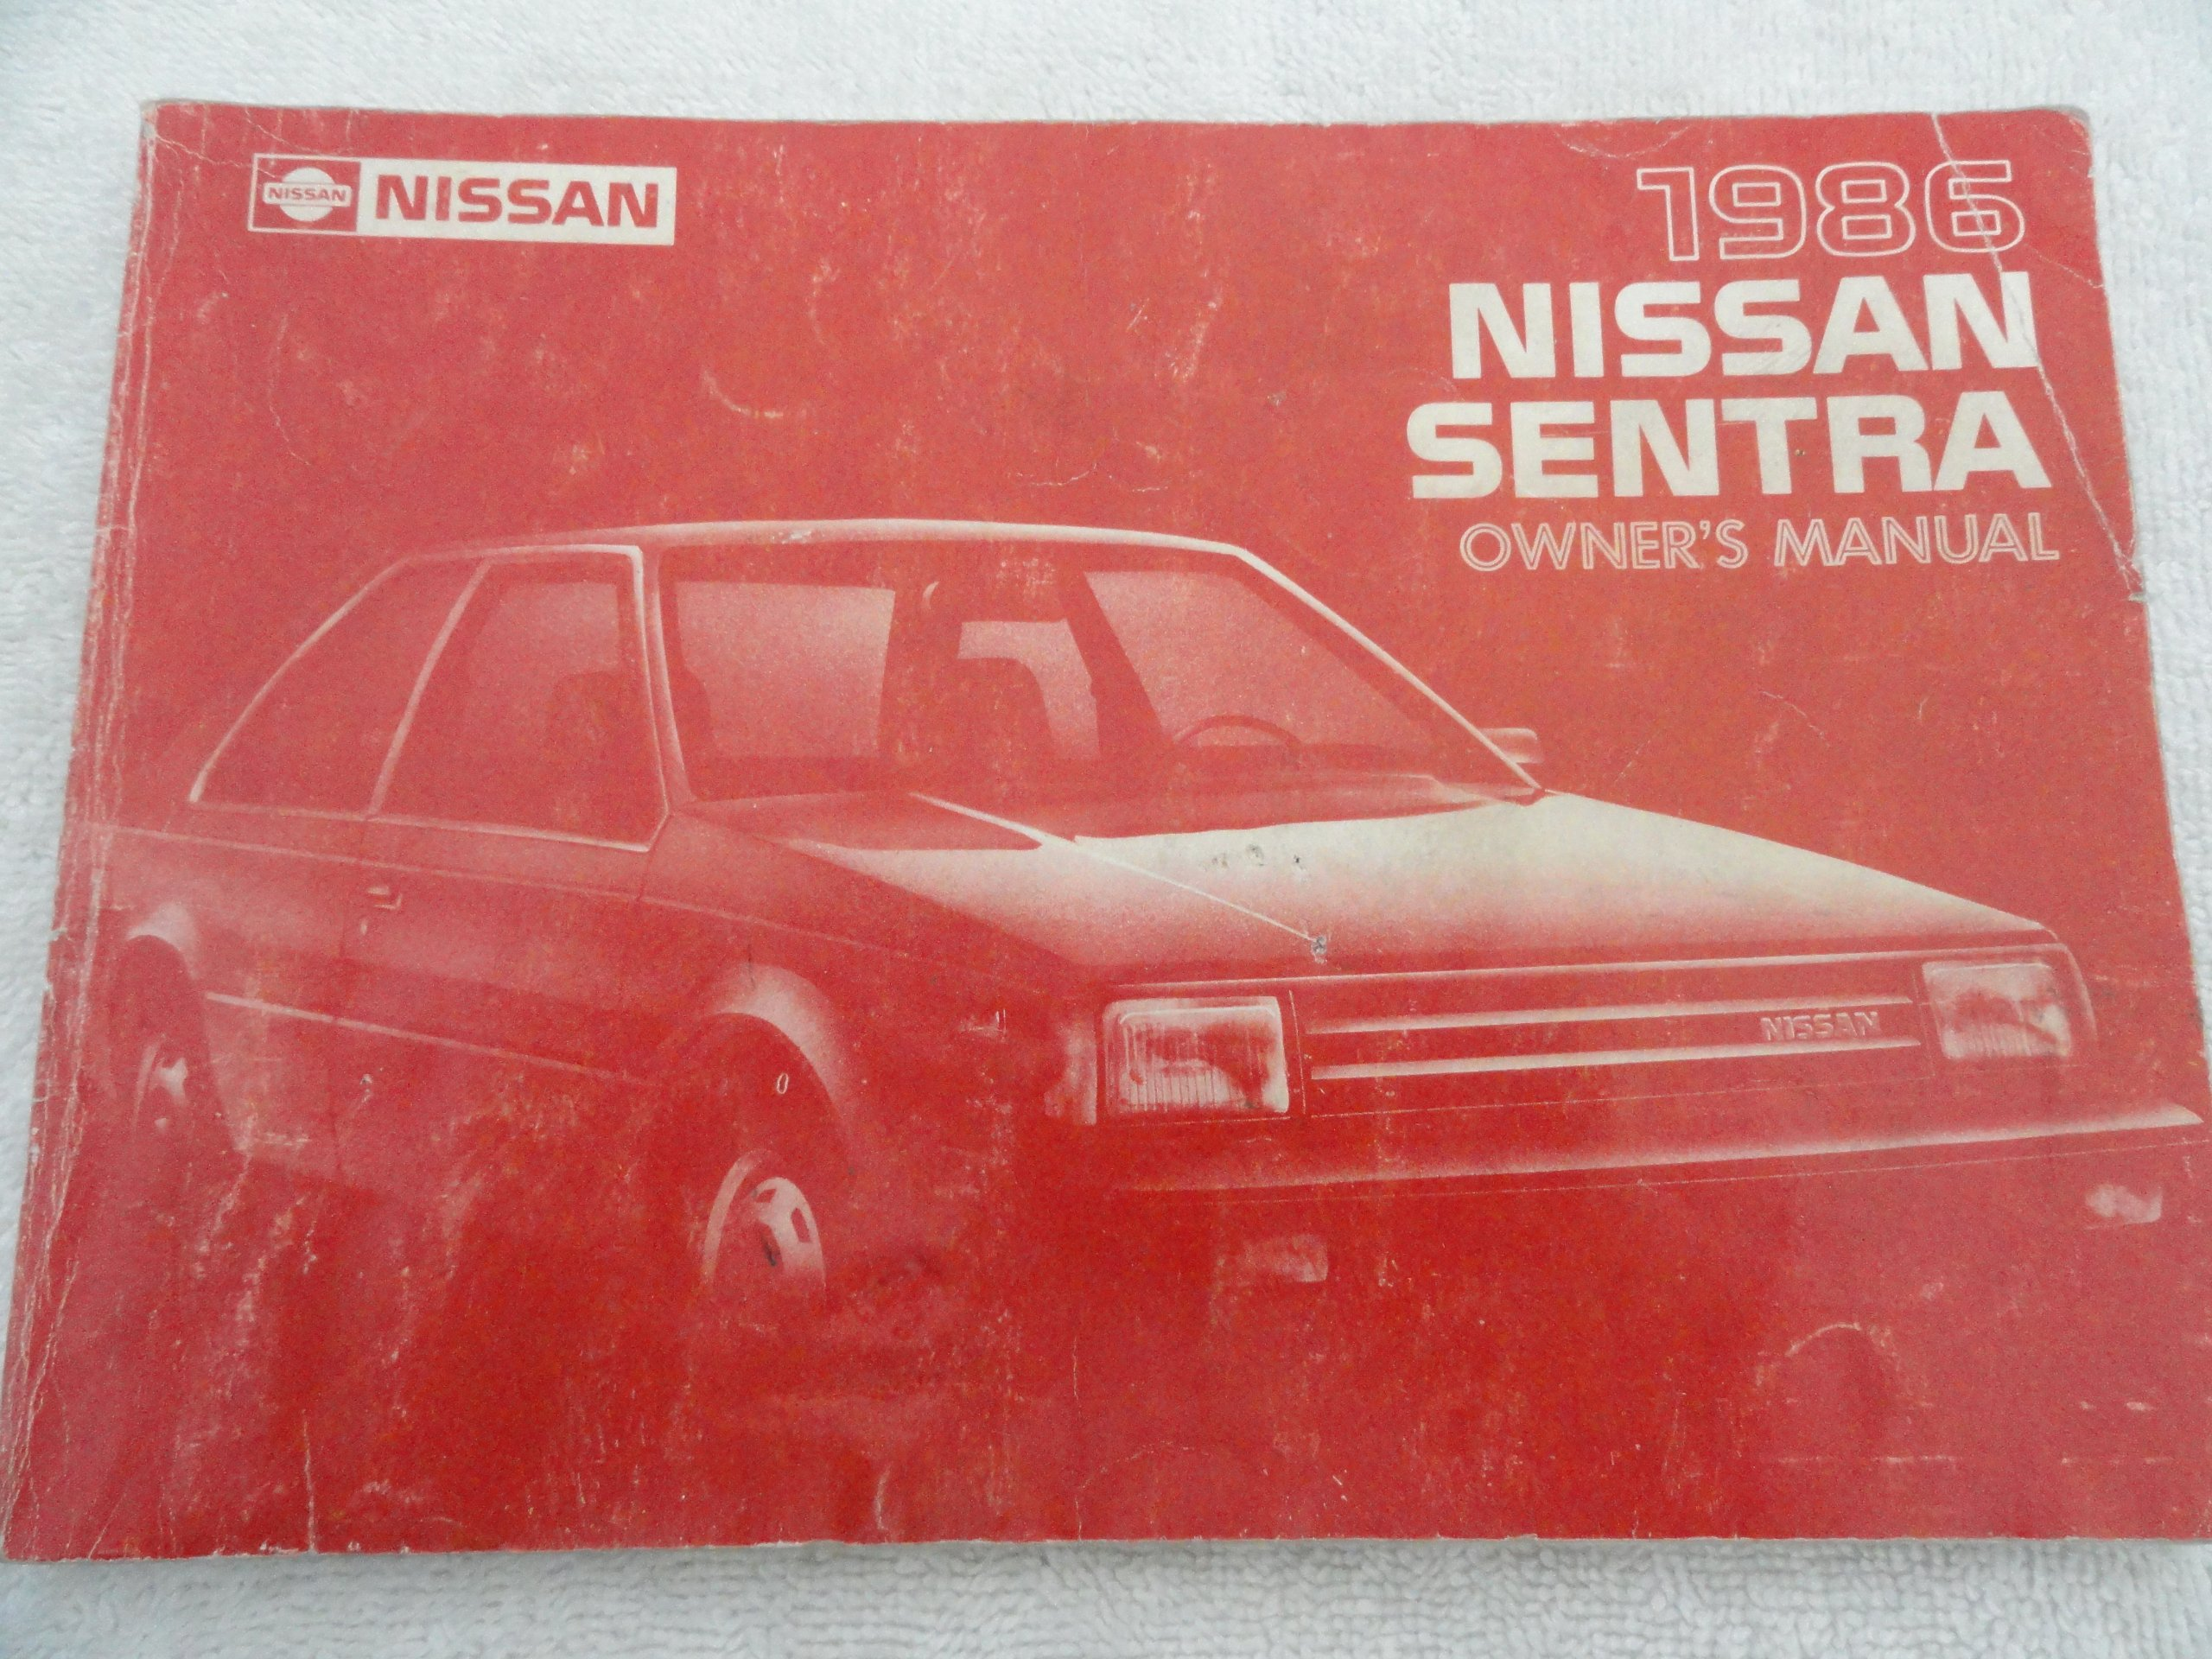 1986 Nissan Sentra Owners Manual Other Car & Truck Manuals ...